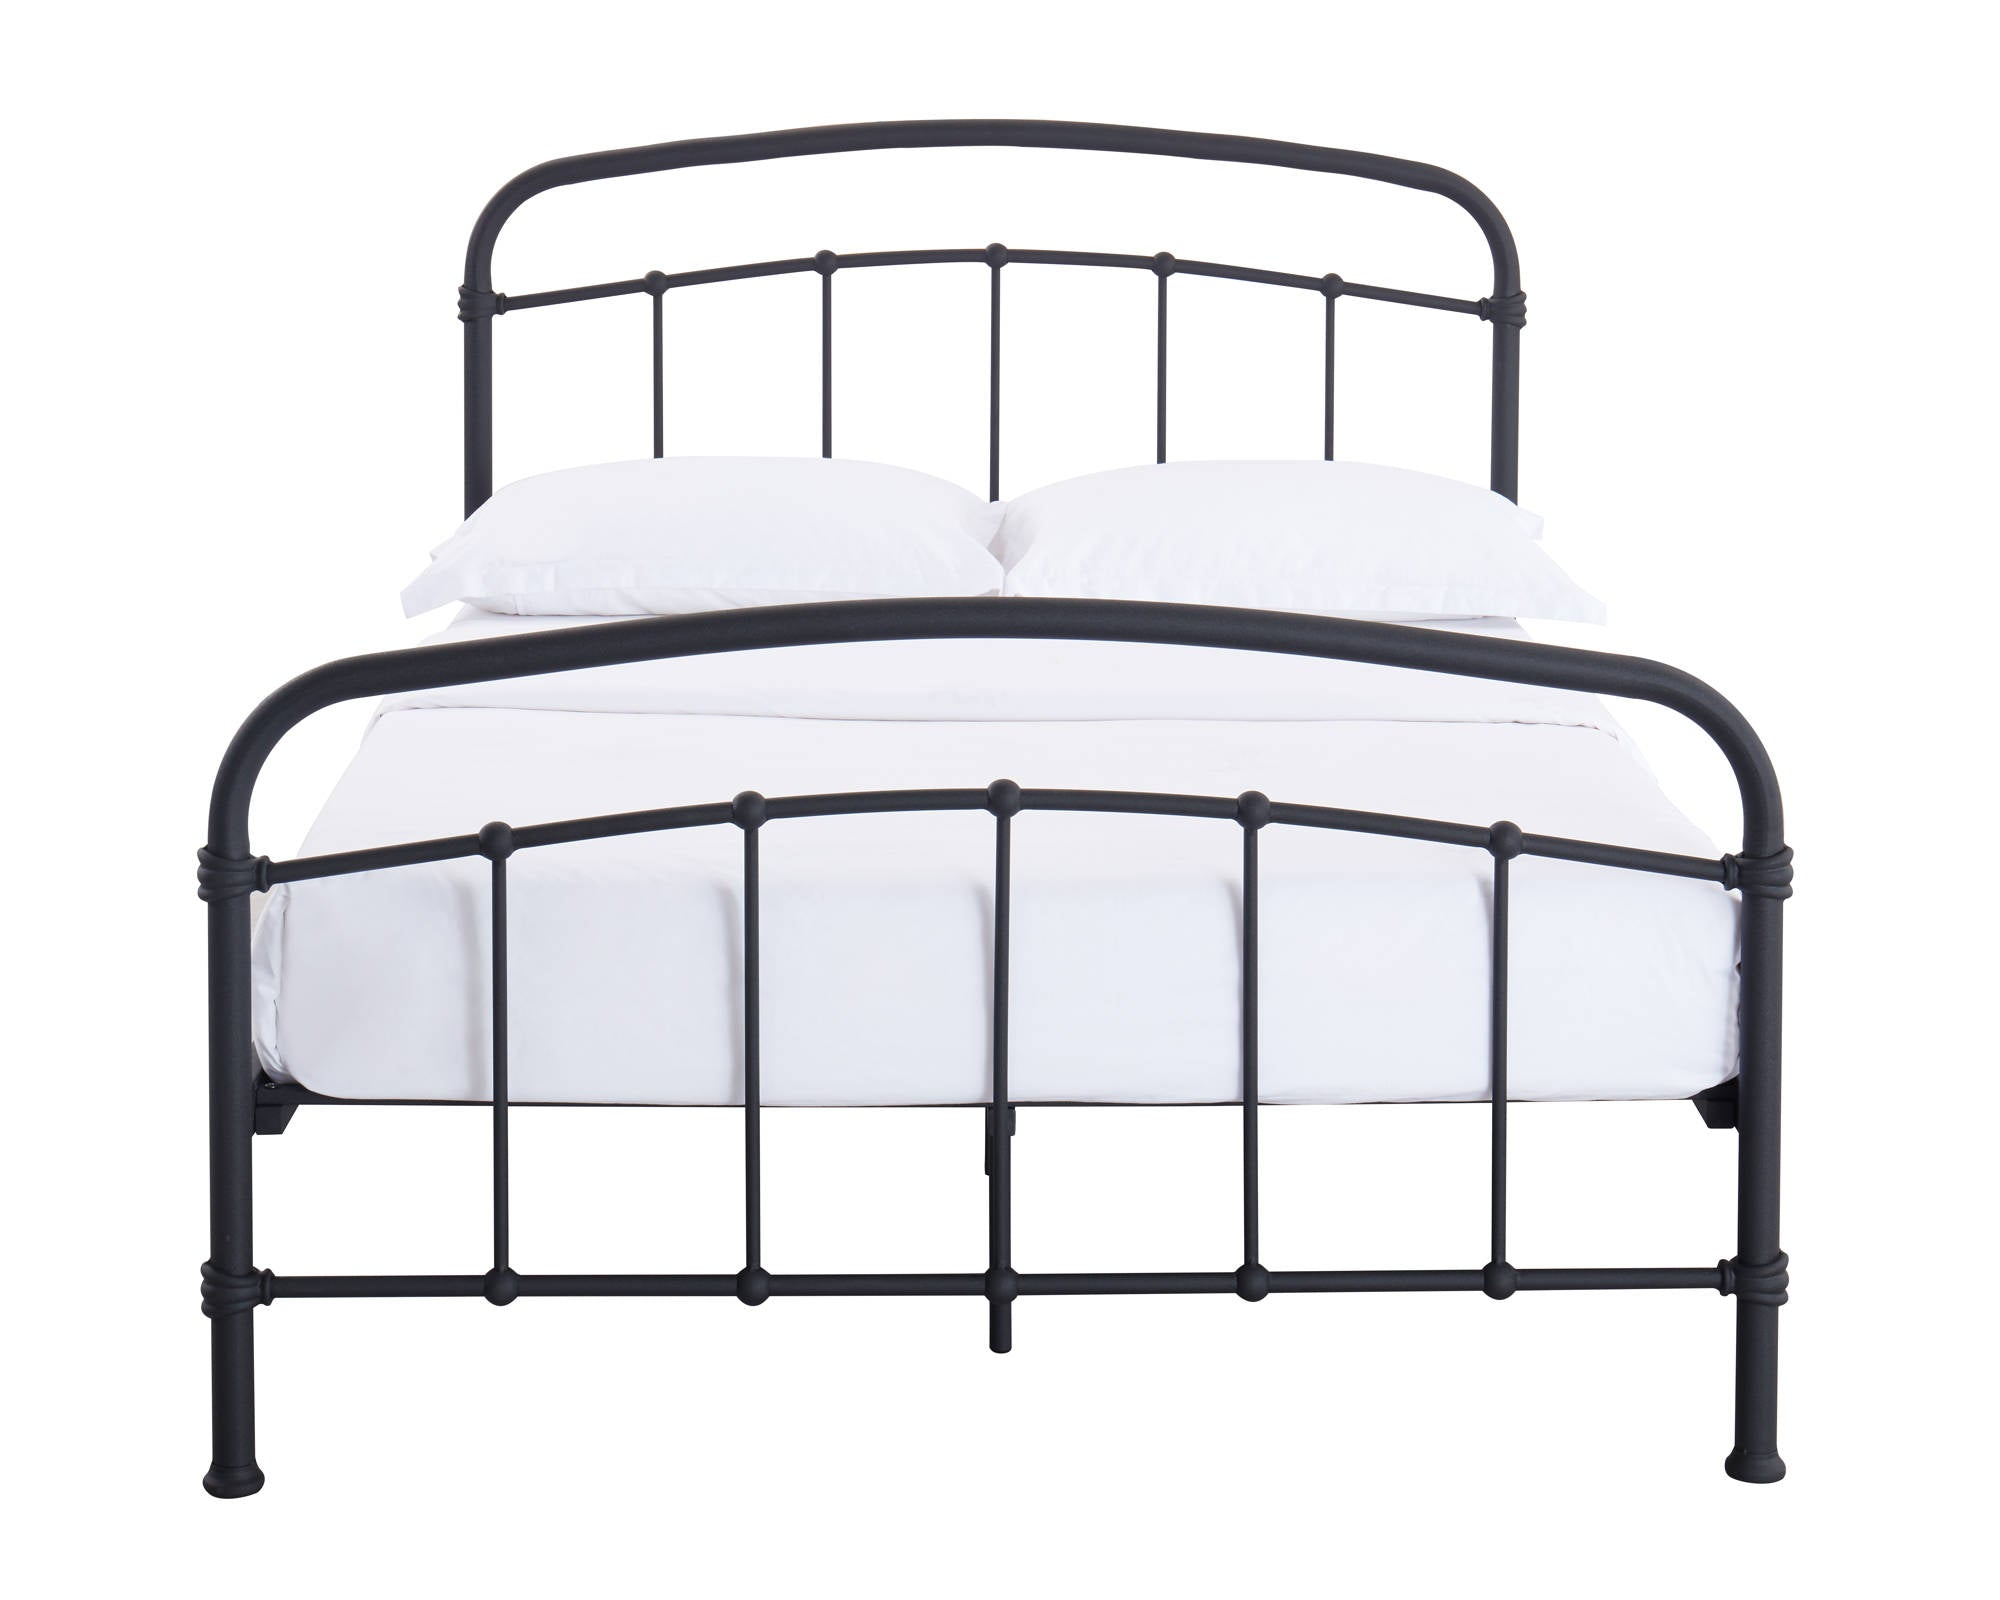 Stretton Single Bed in Black